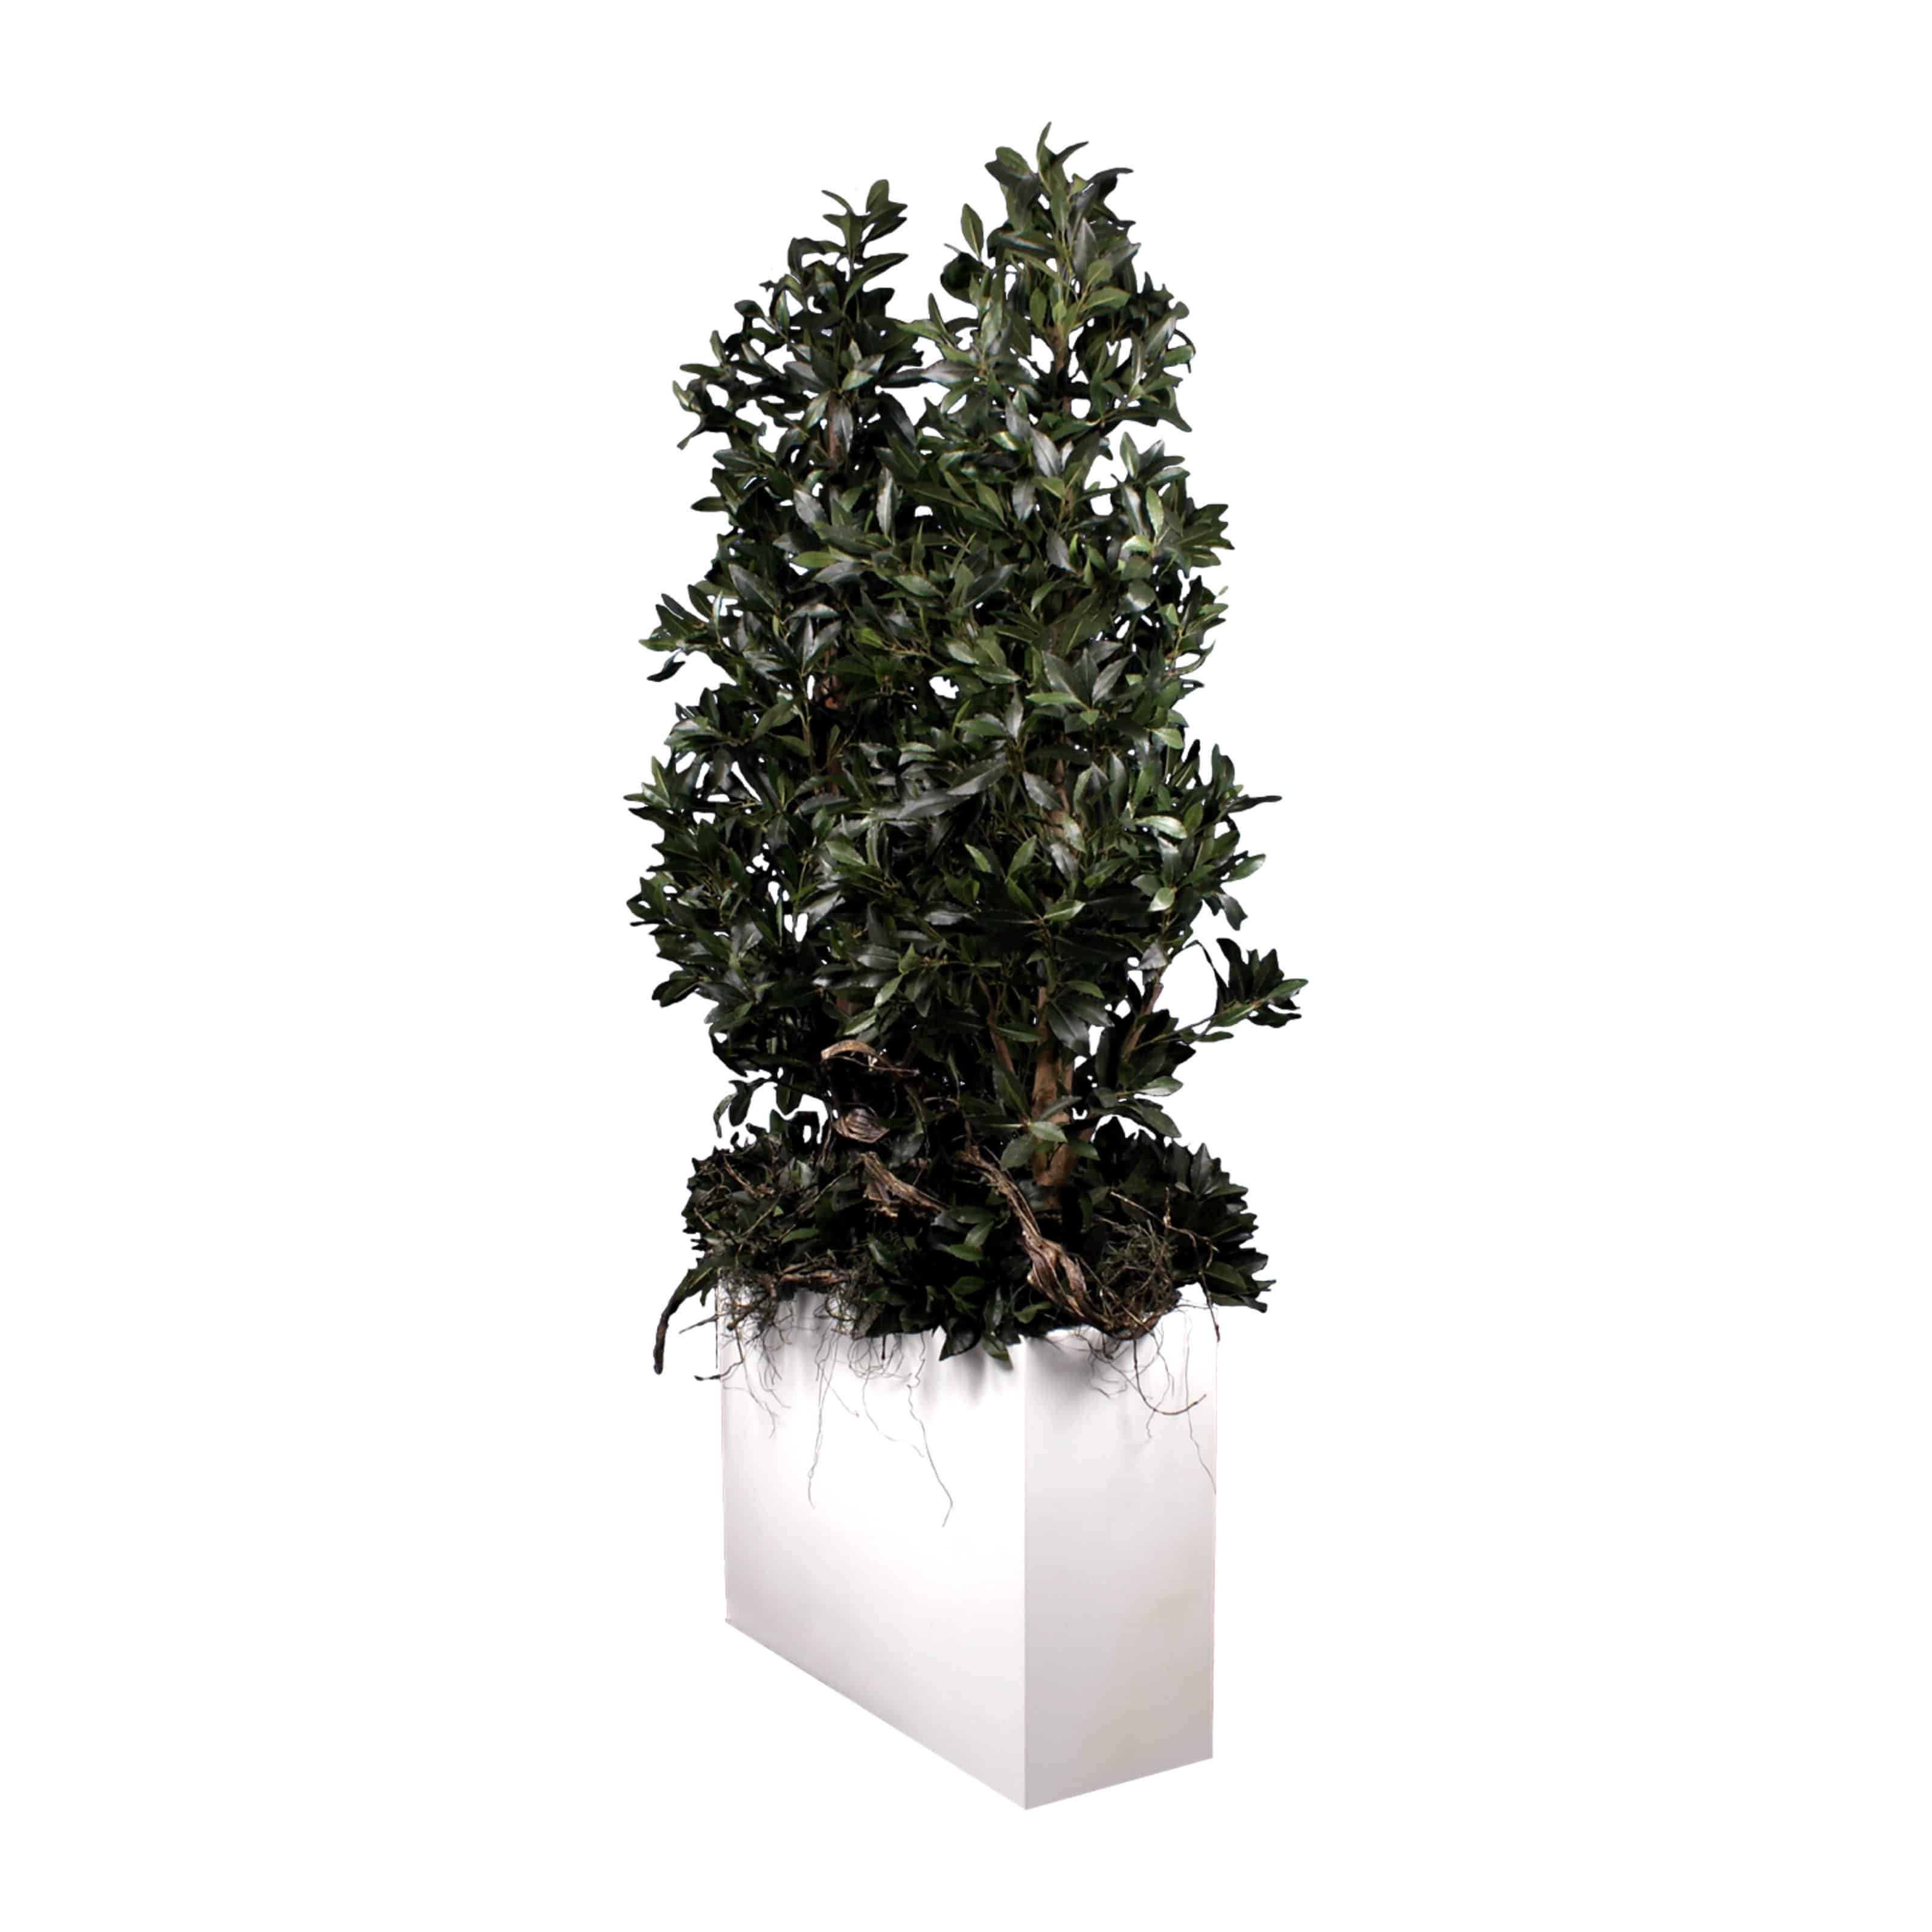 Buy our artificial sweet bay tree arrangement with real tree bark trunks and natural colouring. A modern design - popular